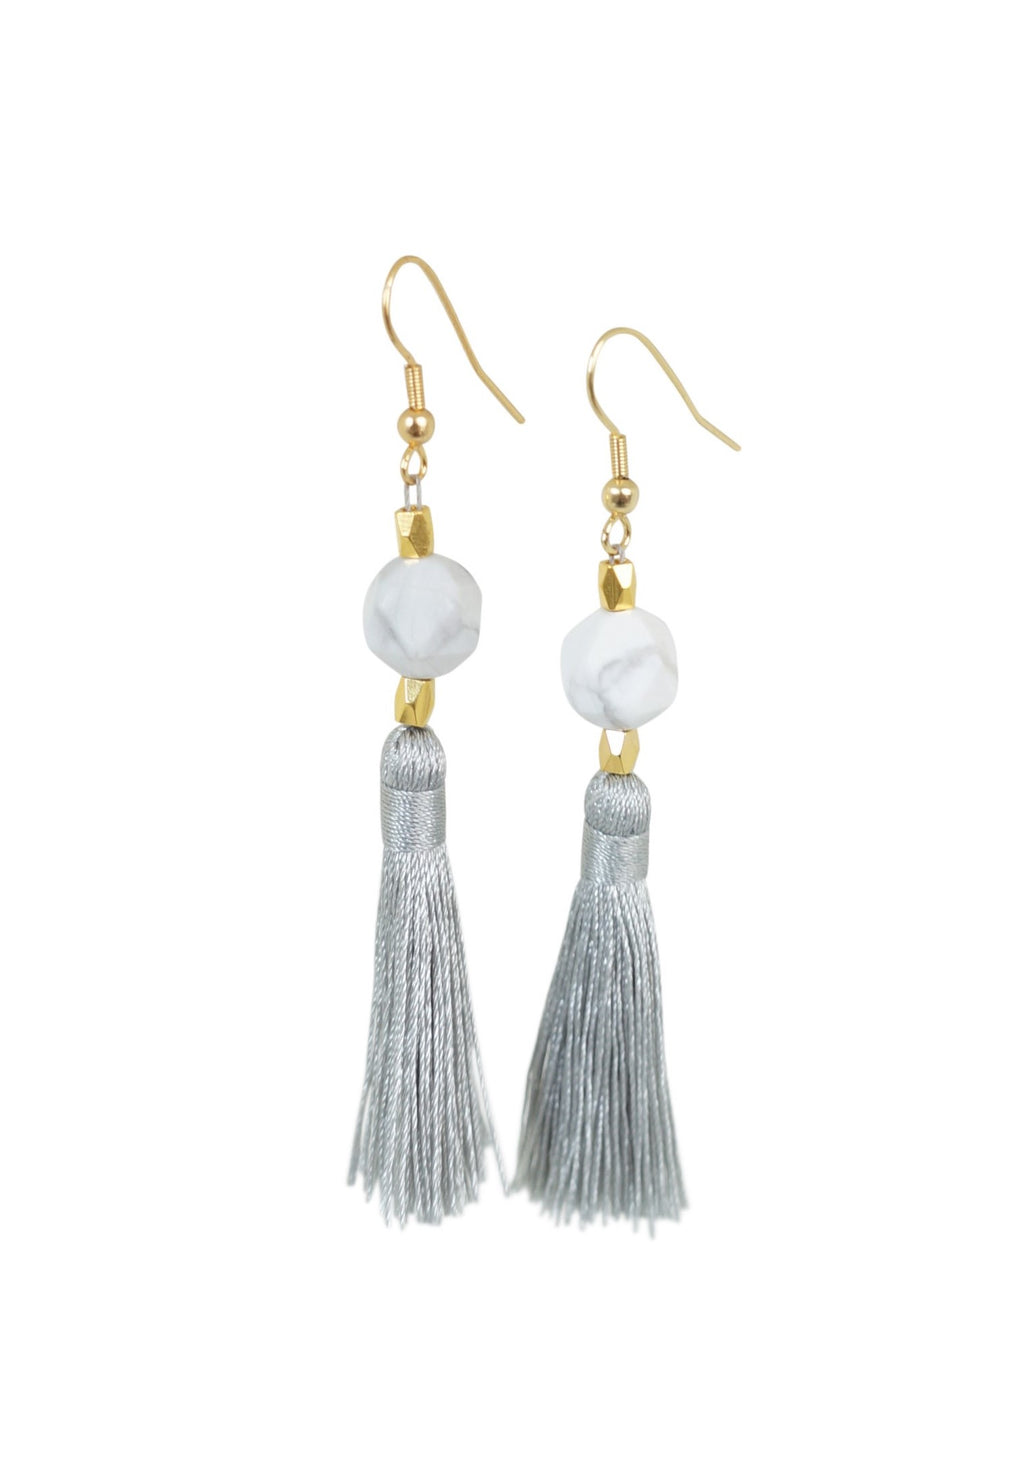 Content Earrings - Carolyn Hearn Designs